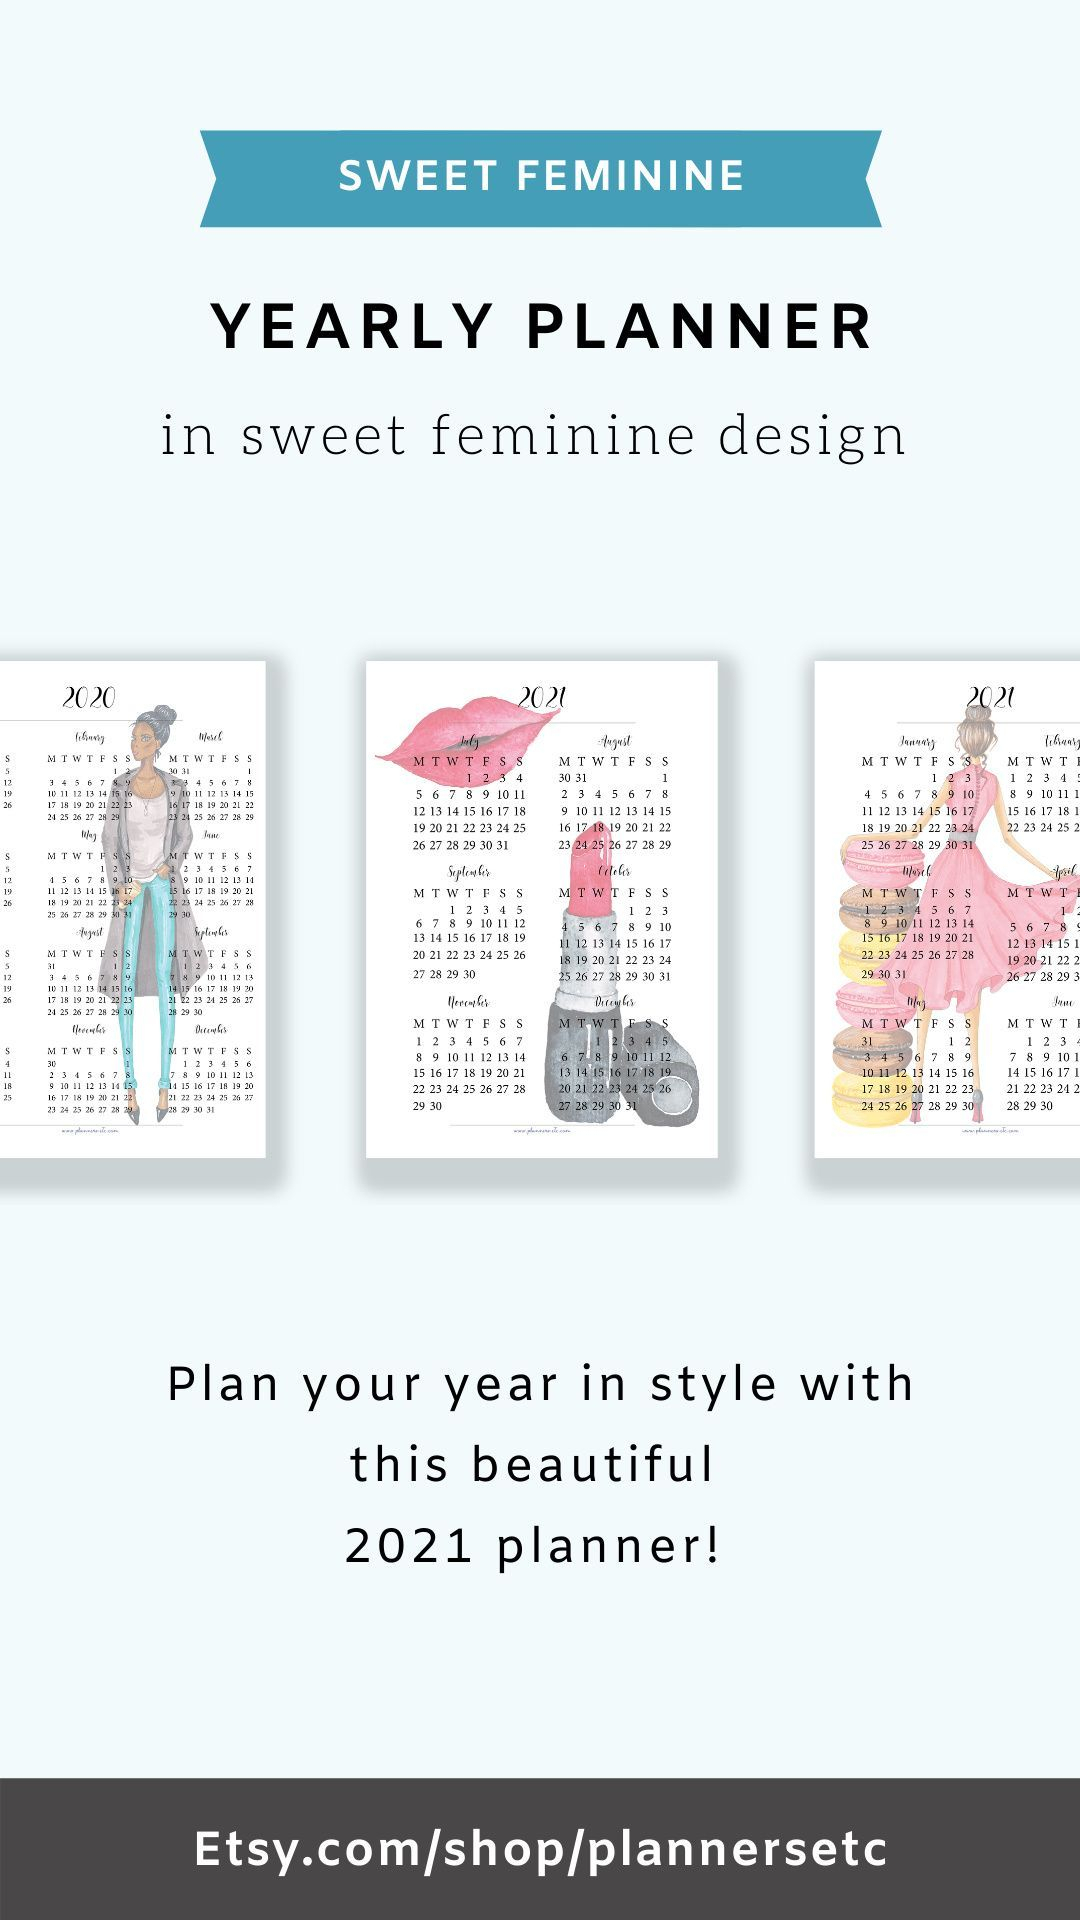 Yearly Calendar 2021 Printable Filofax Personal 2021 2021 in 2021-2021 2 Year Pocket Planner: 2 Year